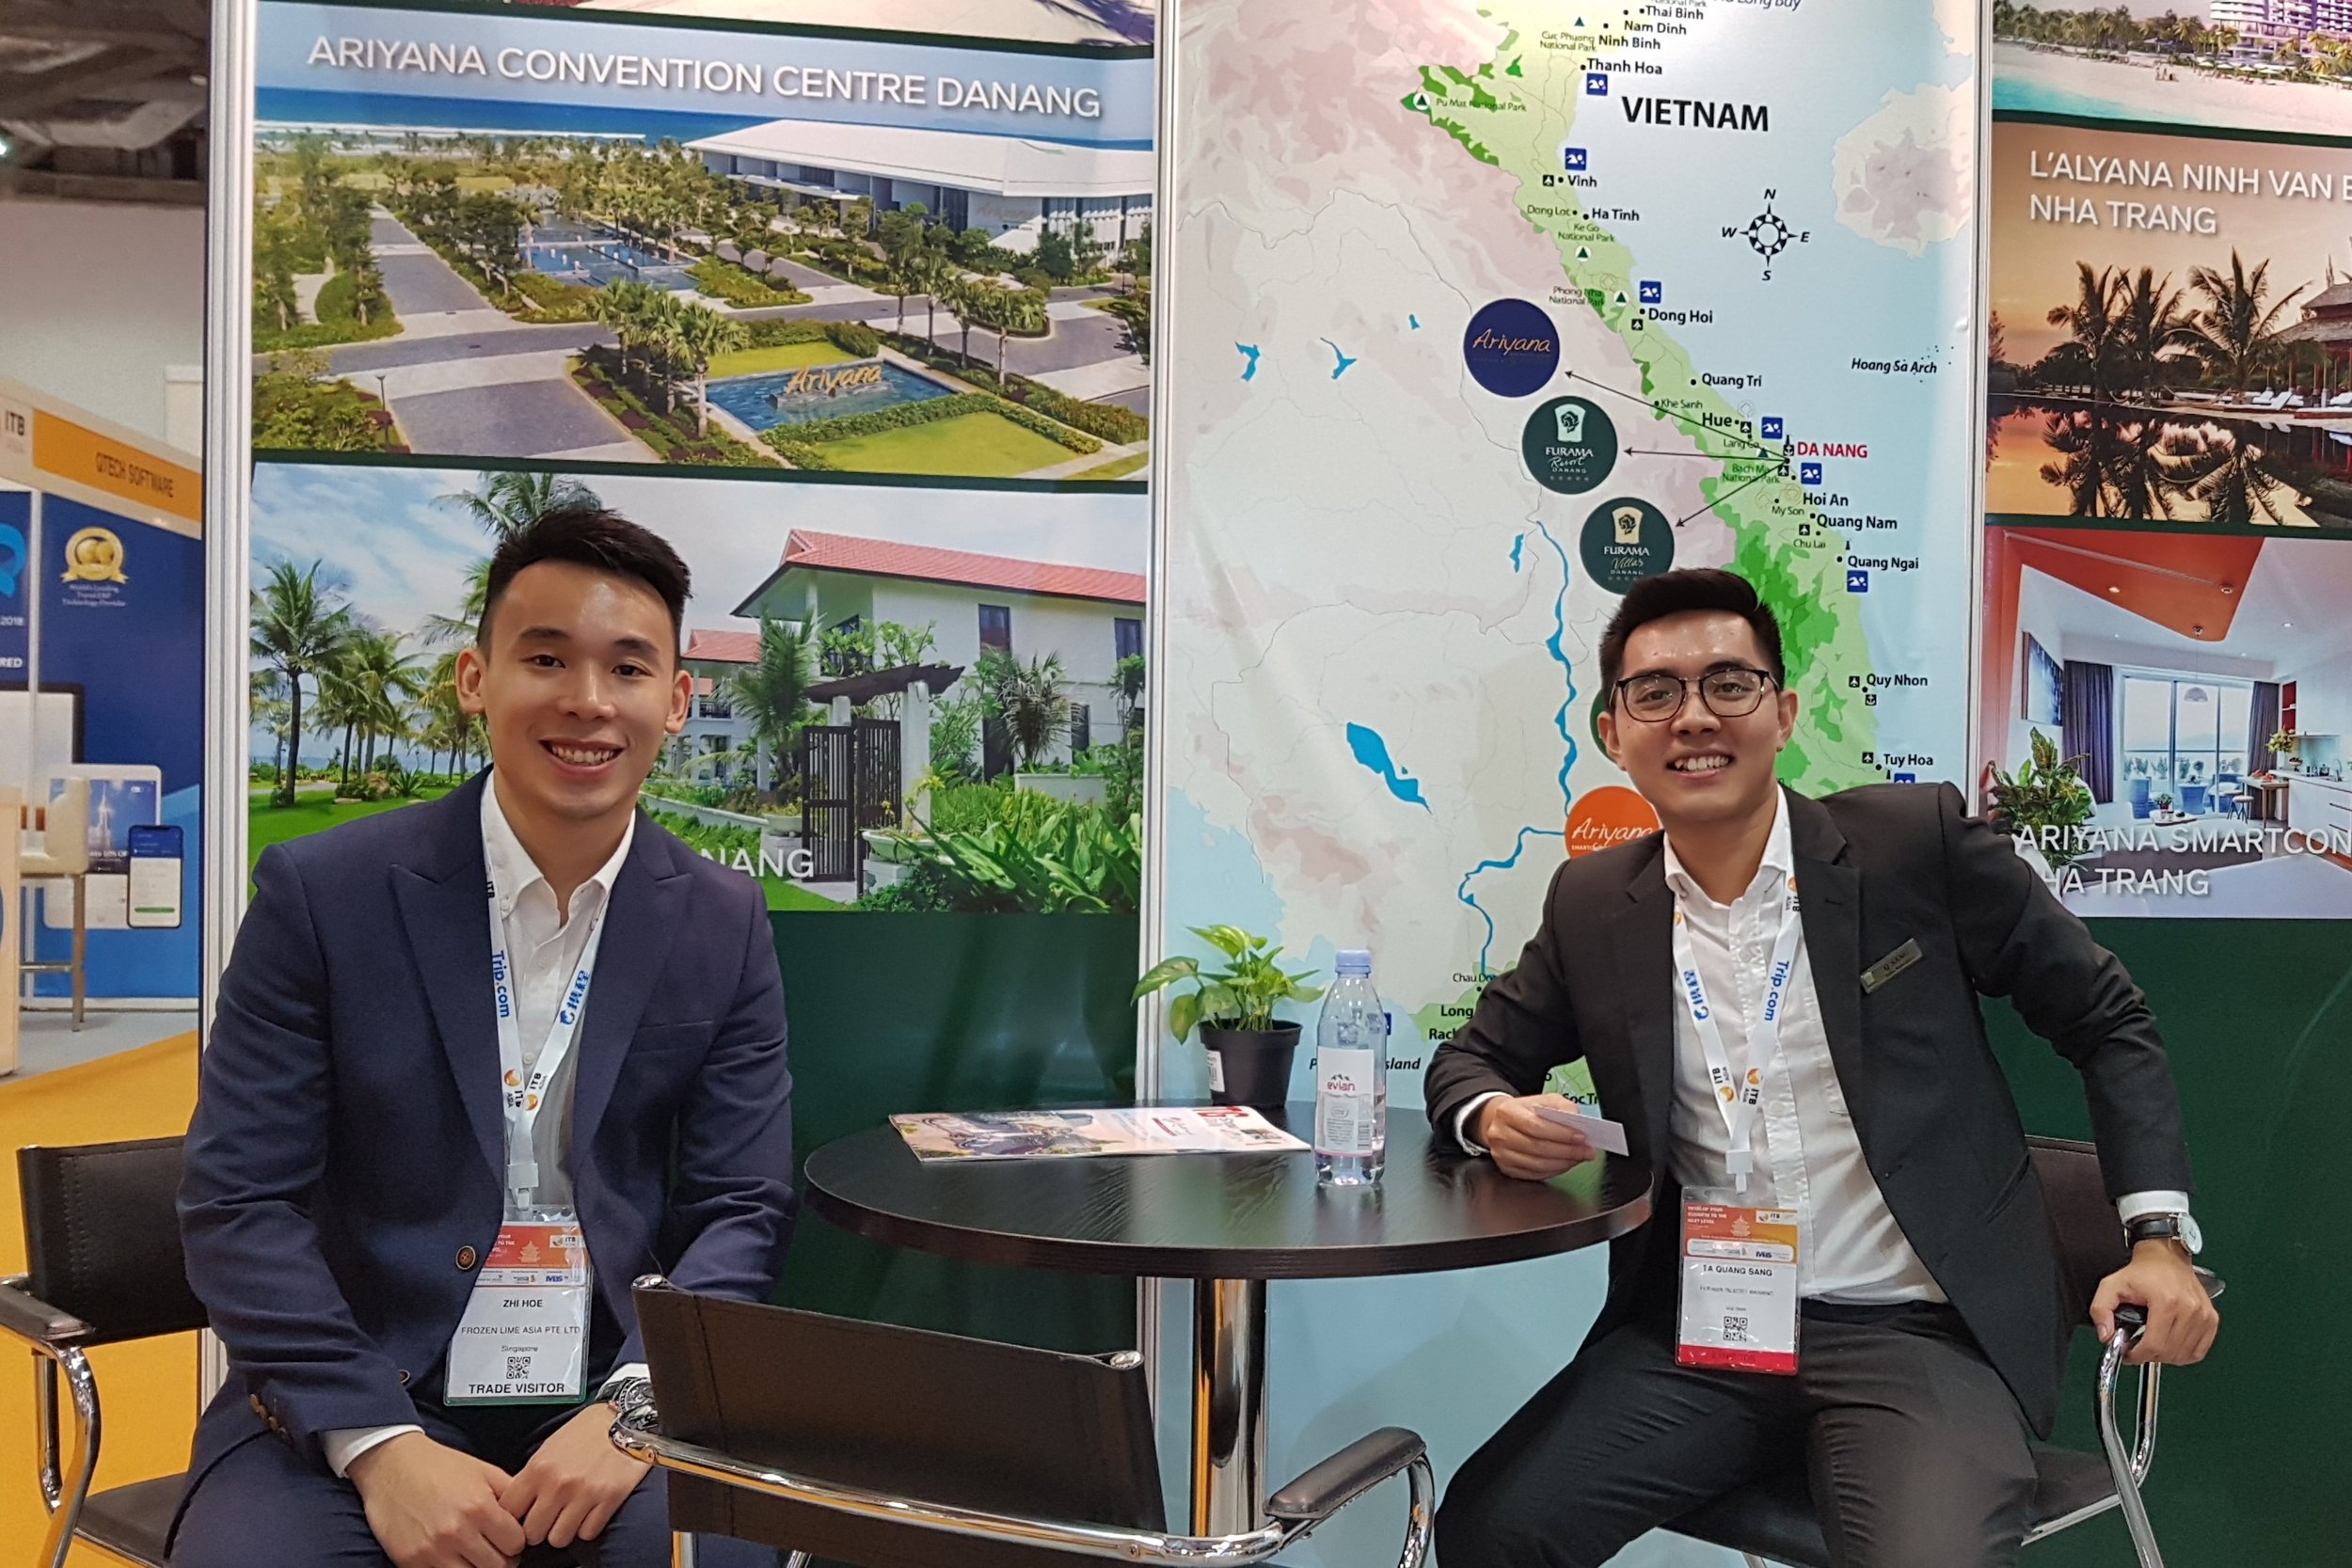 From left to right:  Mr Pow Zhi Hoe (FLA) and Mr Ta Quang Sang (Furama Resort Danang).